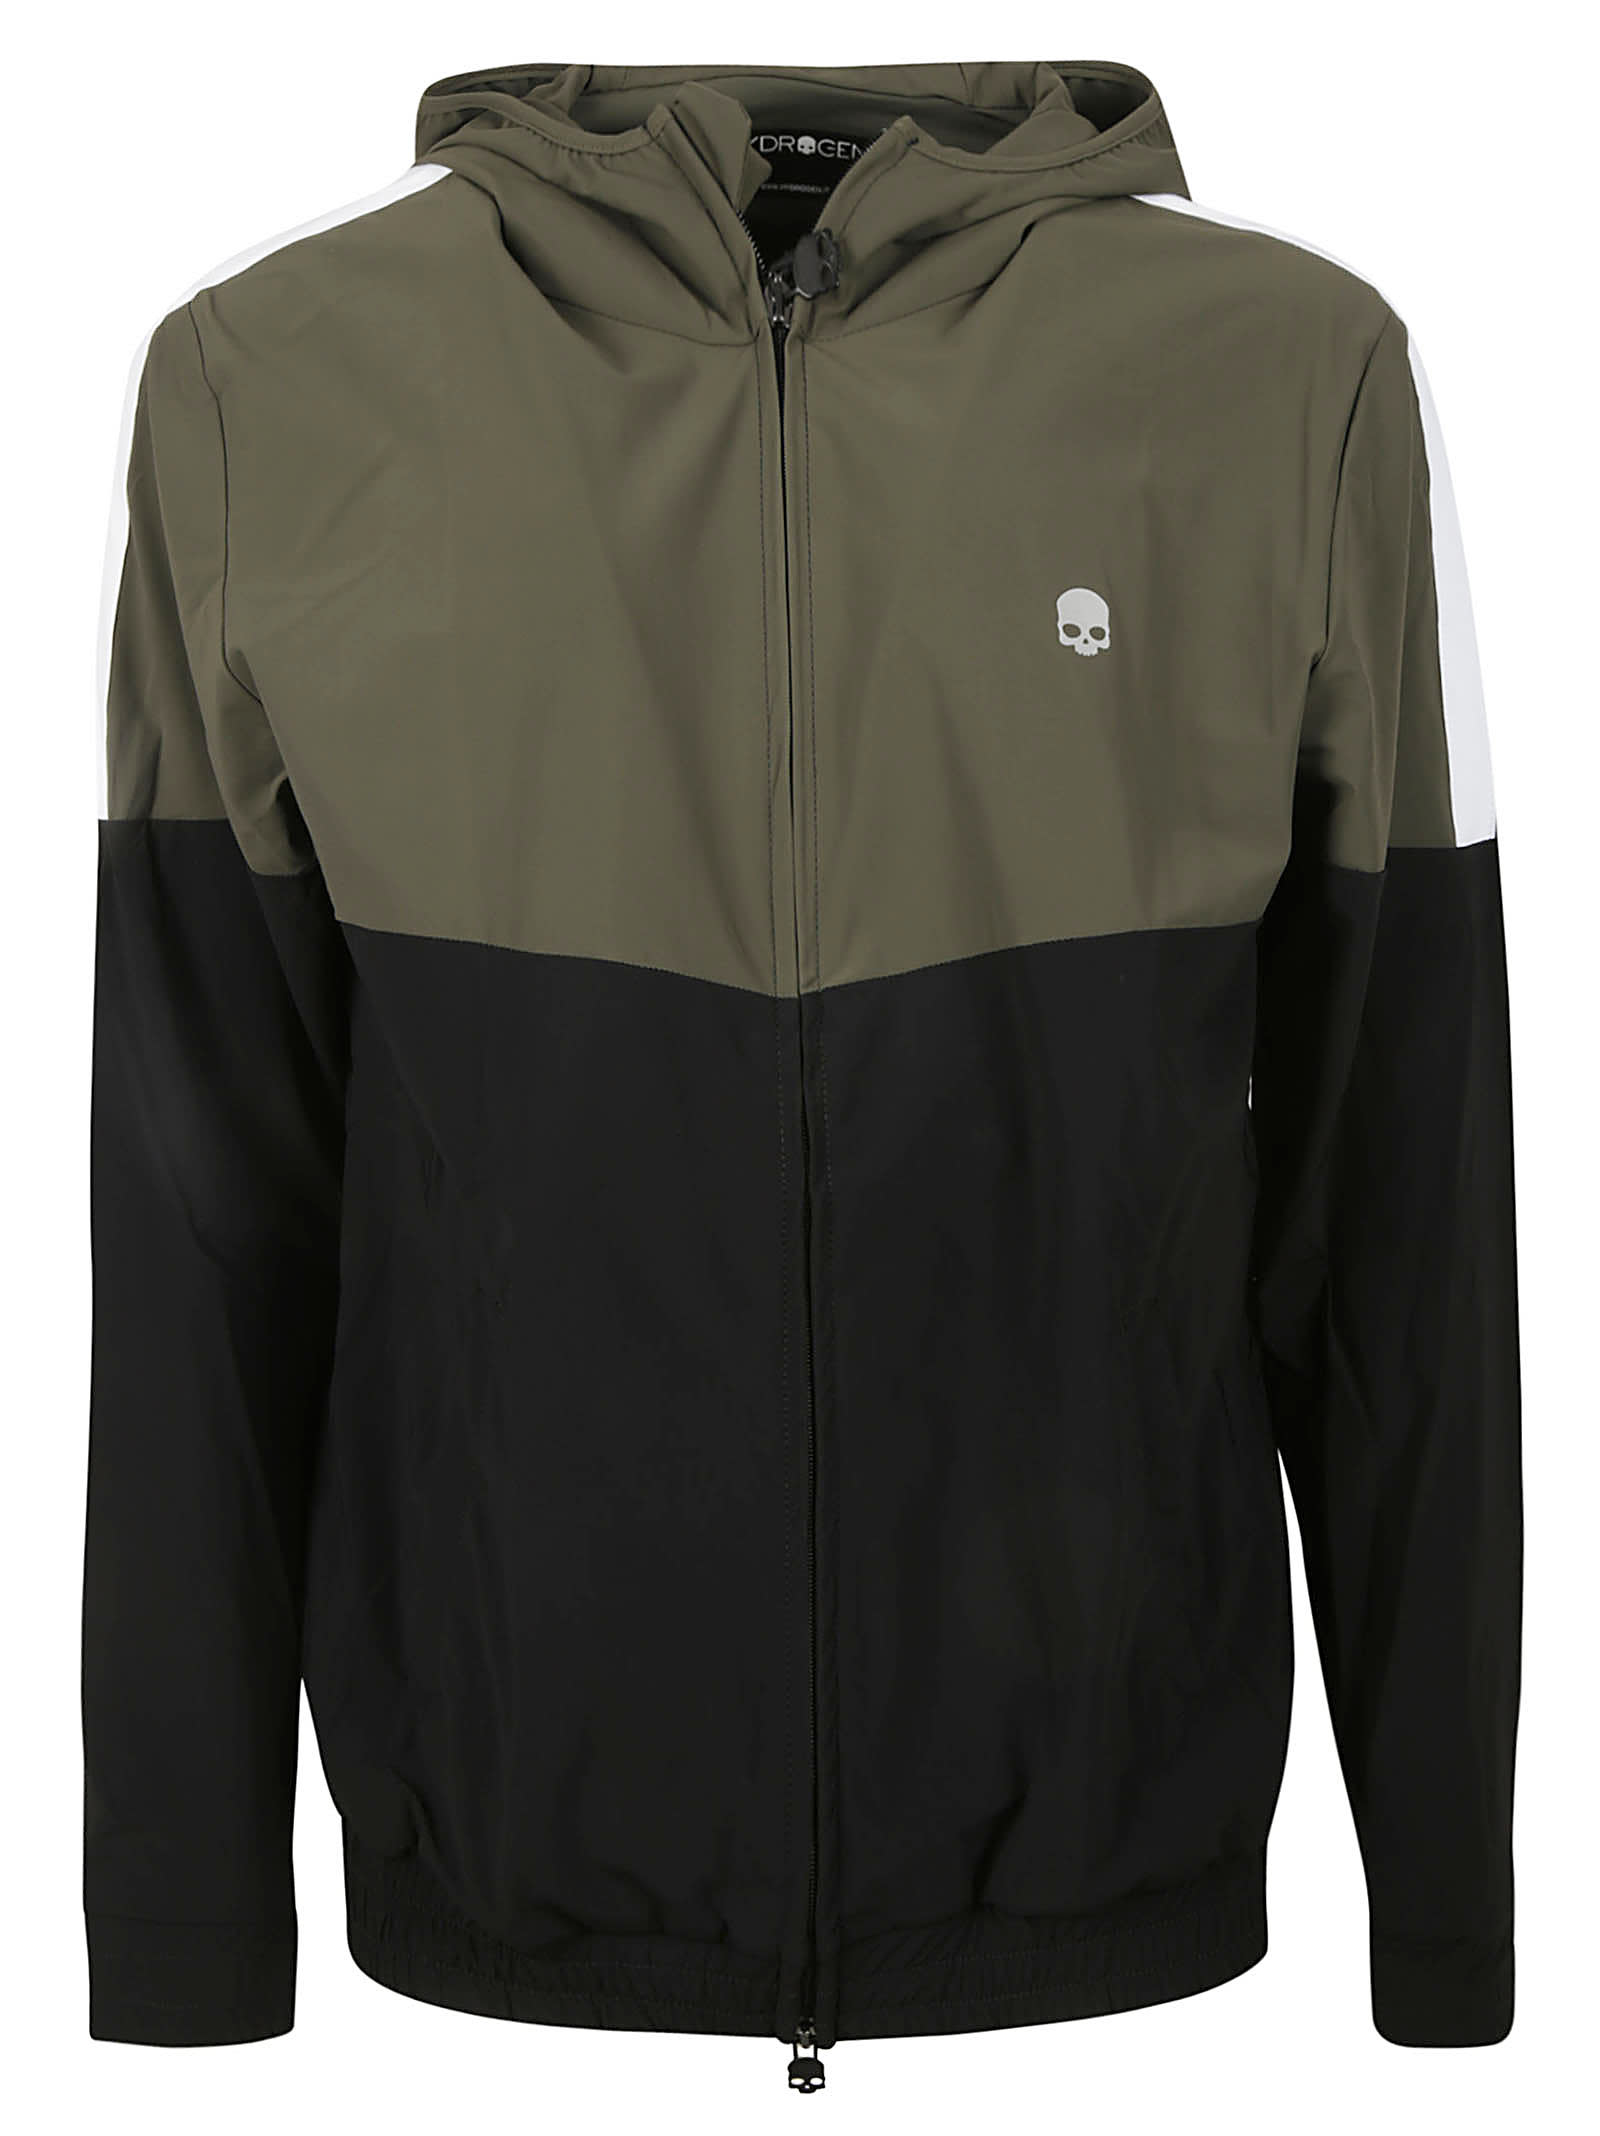 Hydrogen Trench Fz Hoodie In Military Green/black